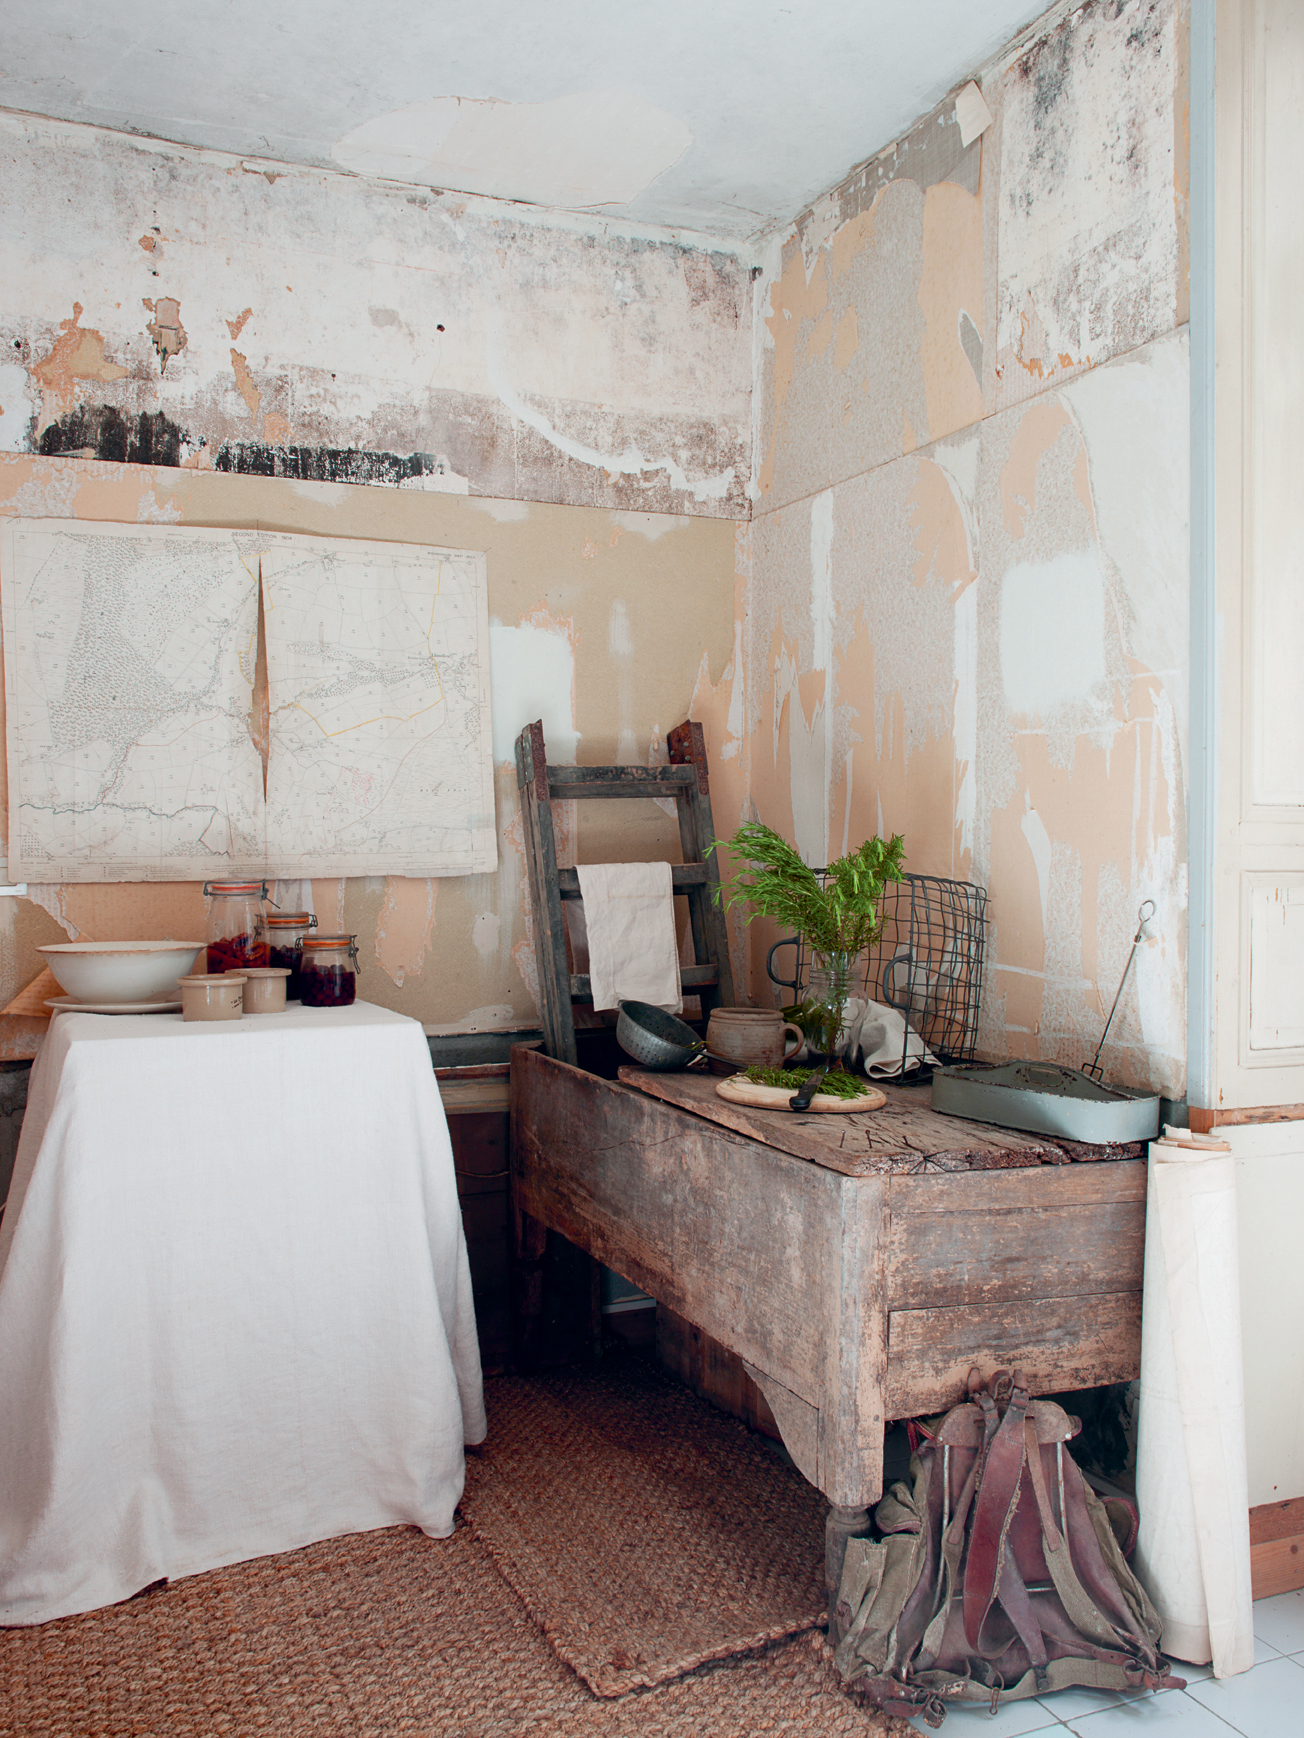 Decorate your home with forage finds